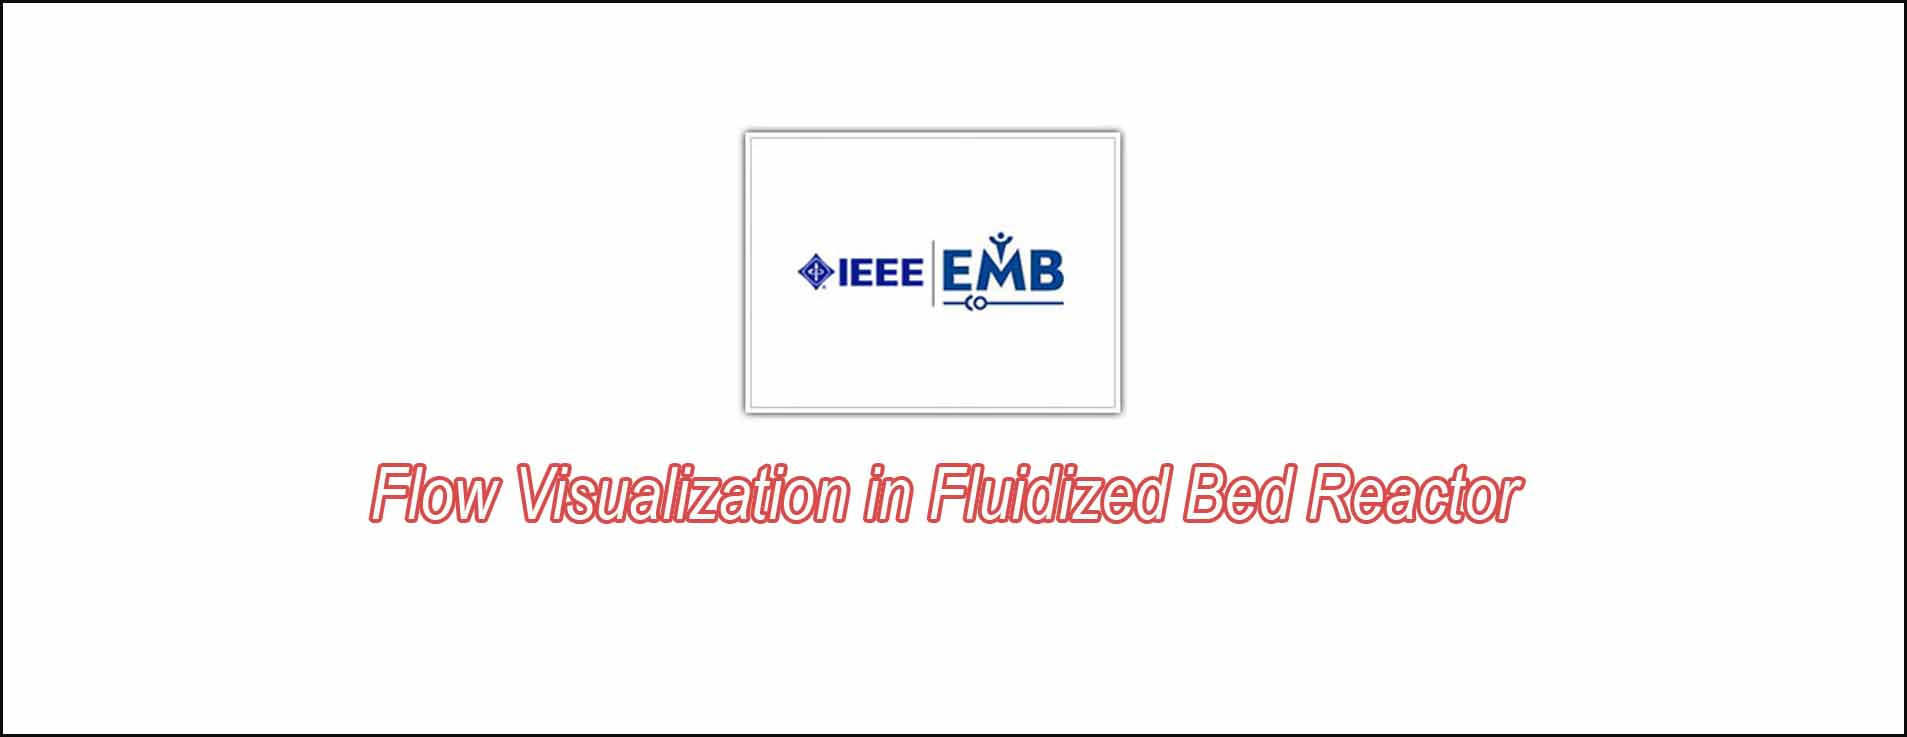 Flow Visualization In Fluidized Bed Reactor